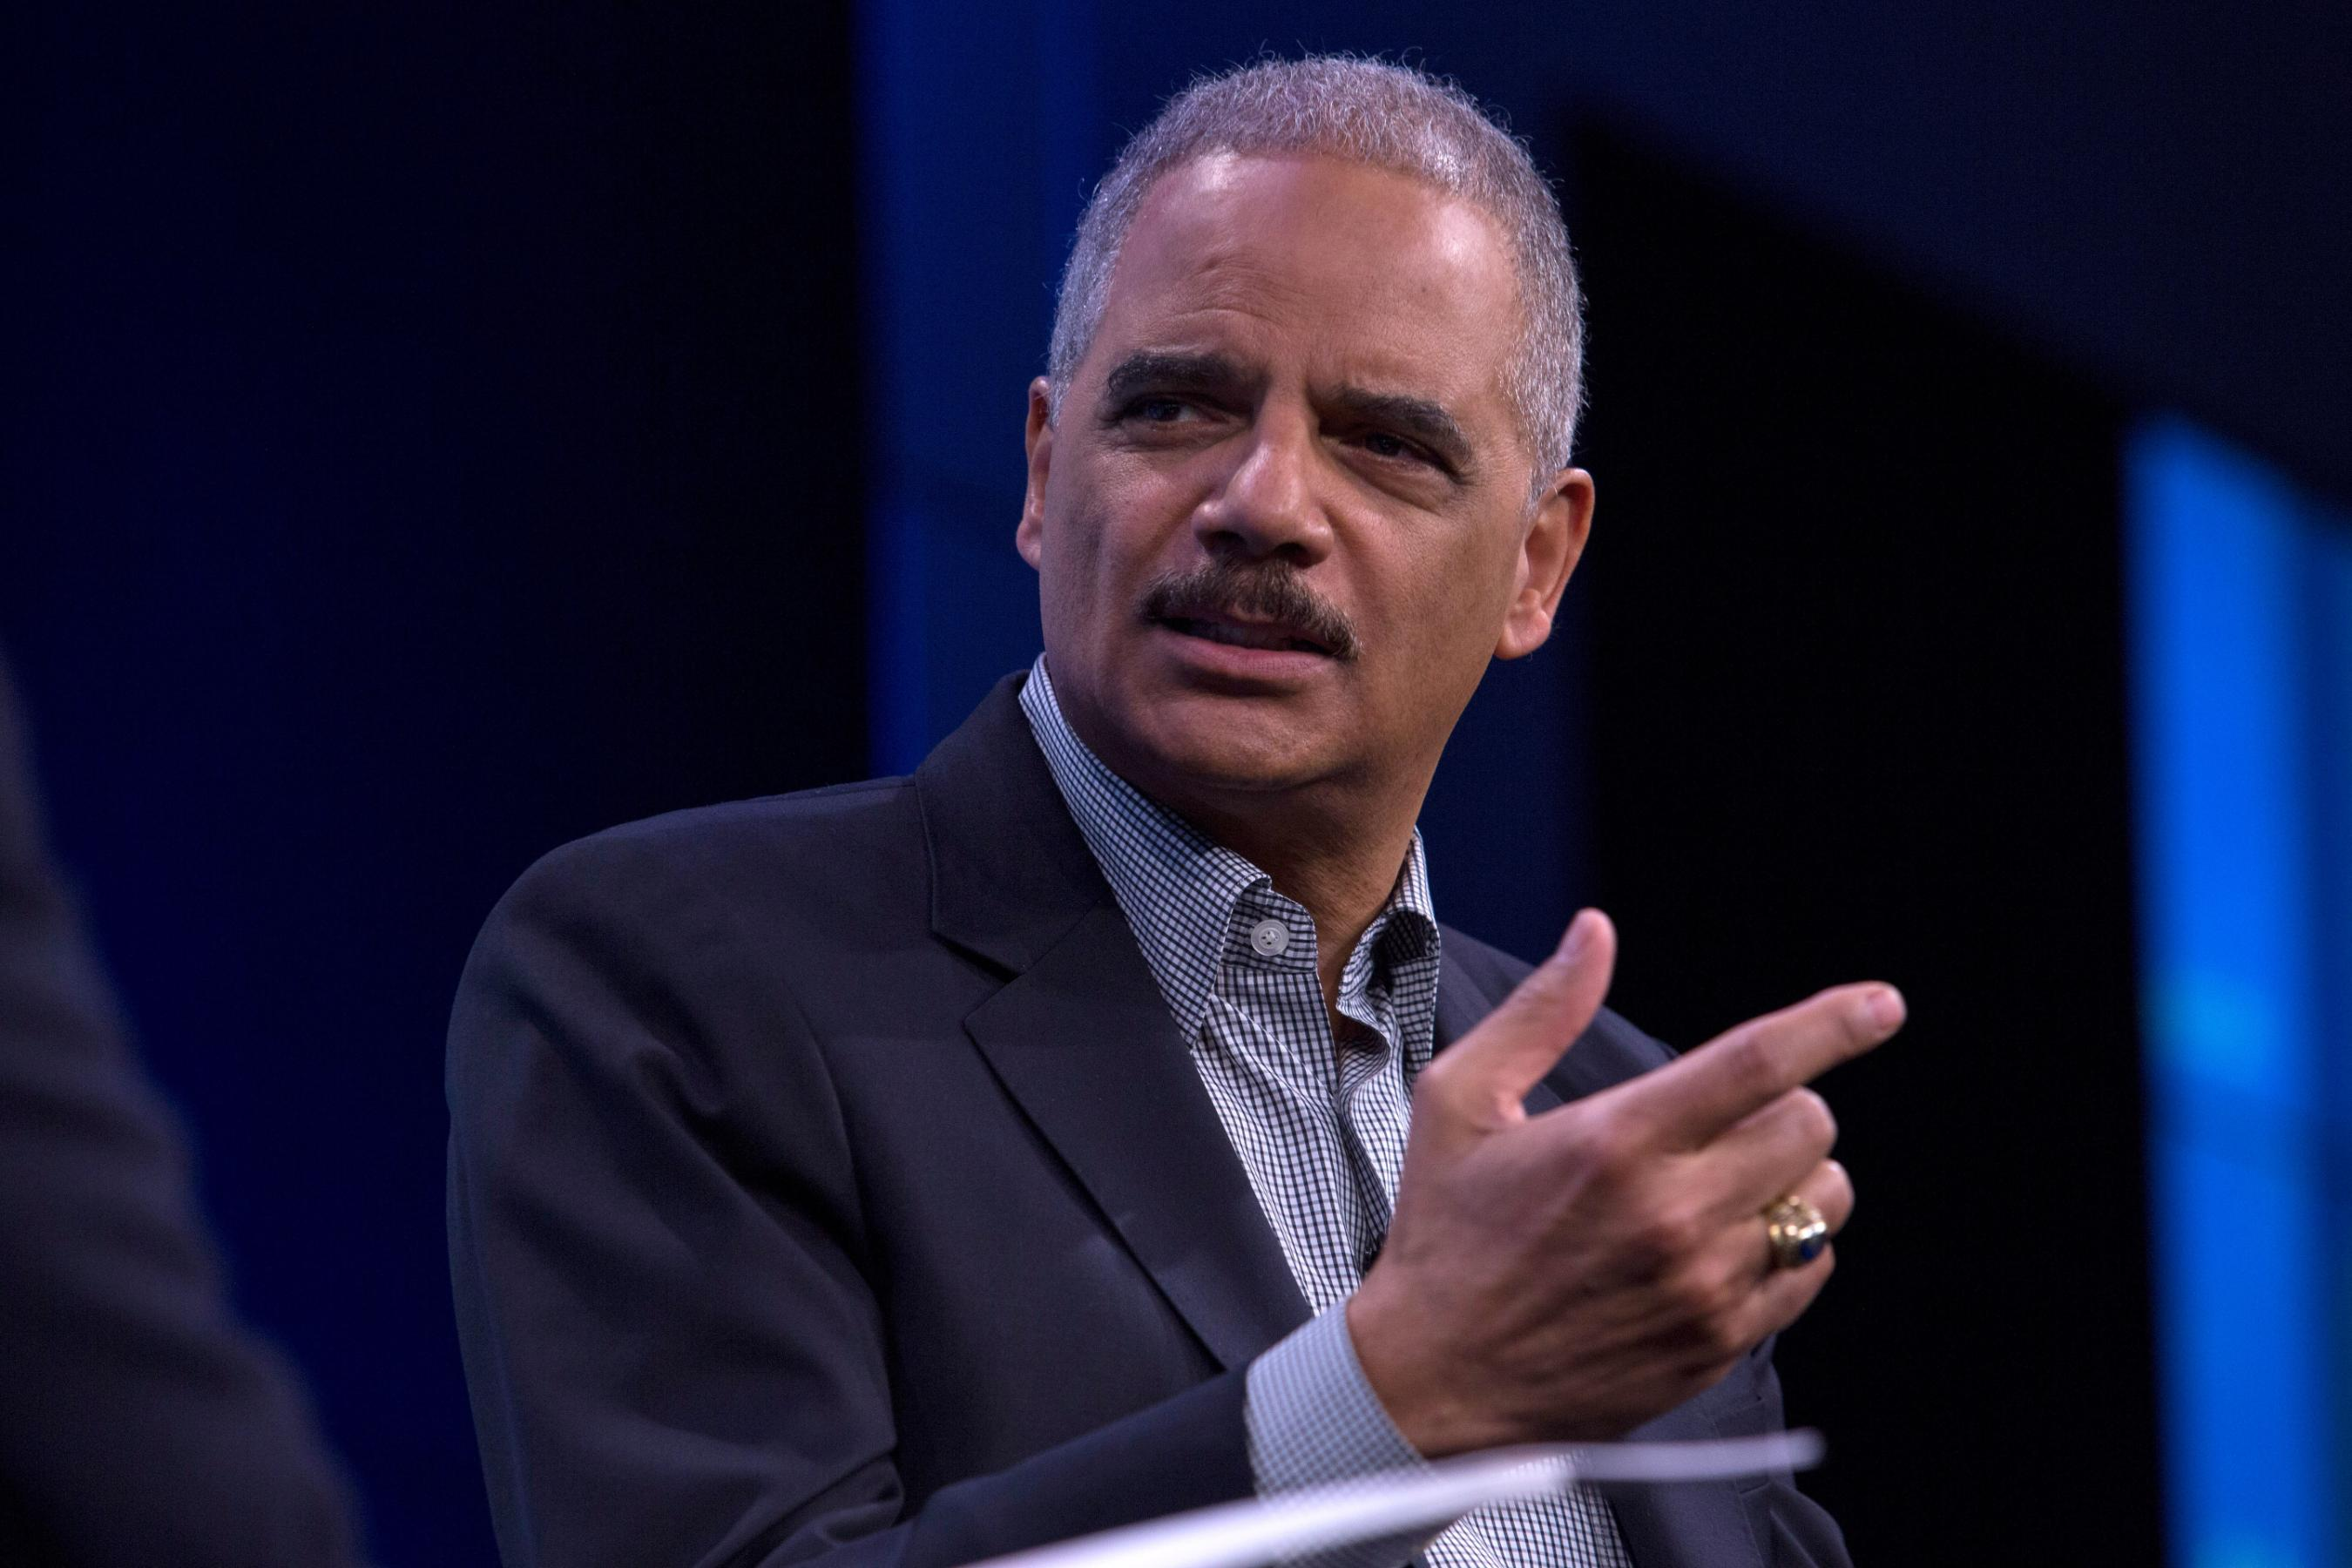 Ex-Attorney General Eric Holder accuses Republicans of using courts to facilitate 'cheating'